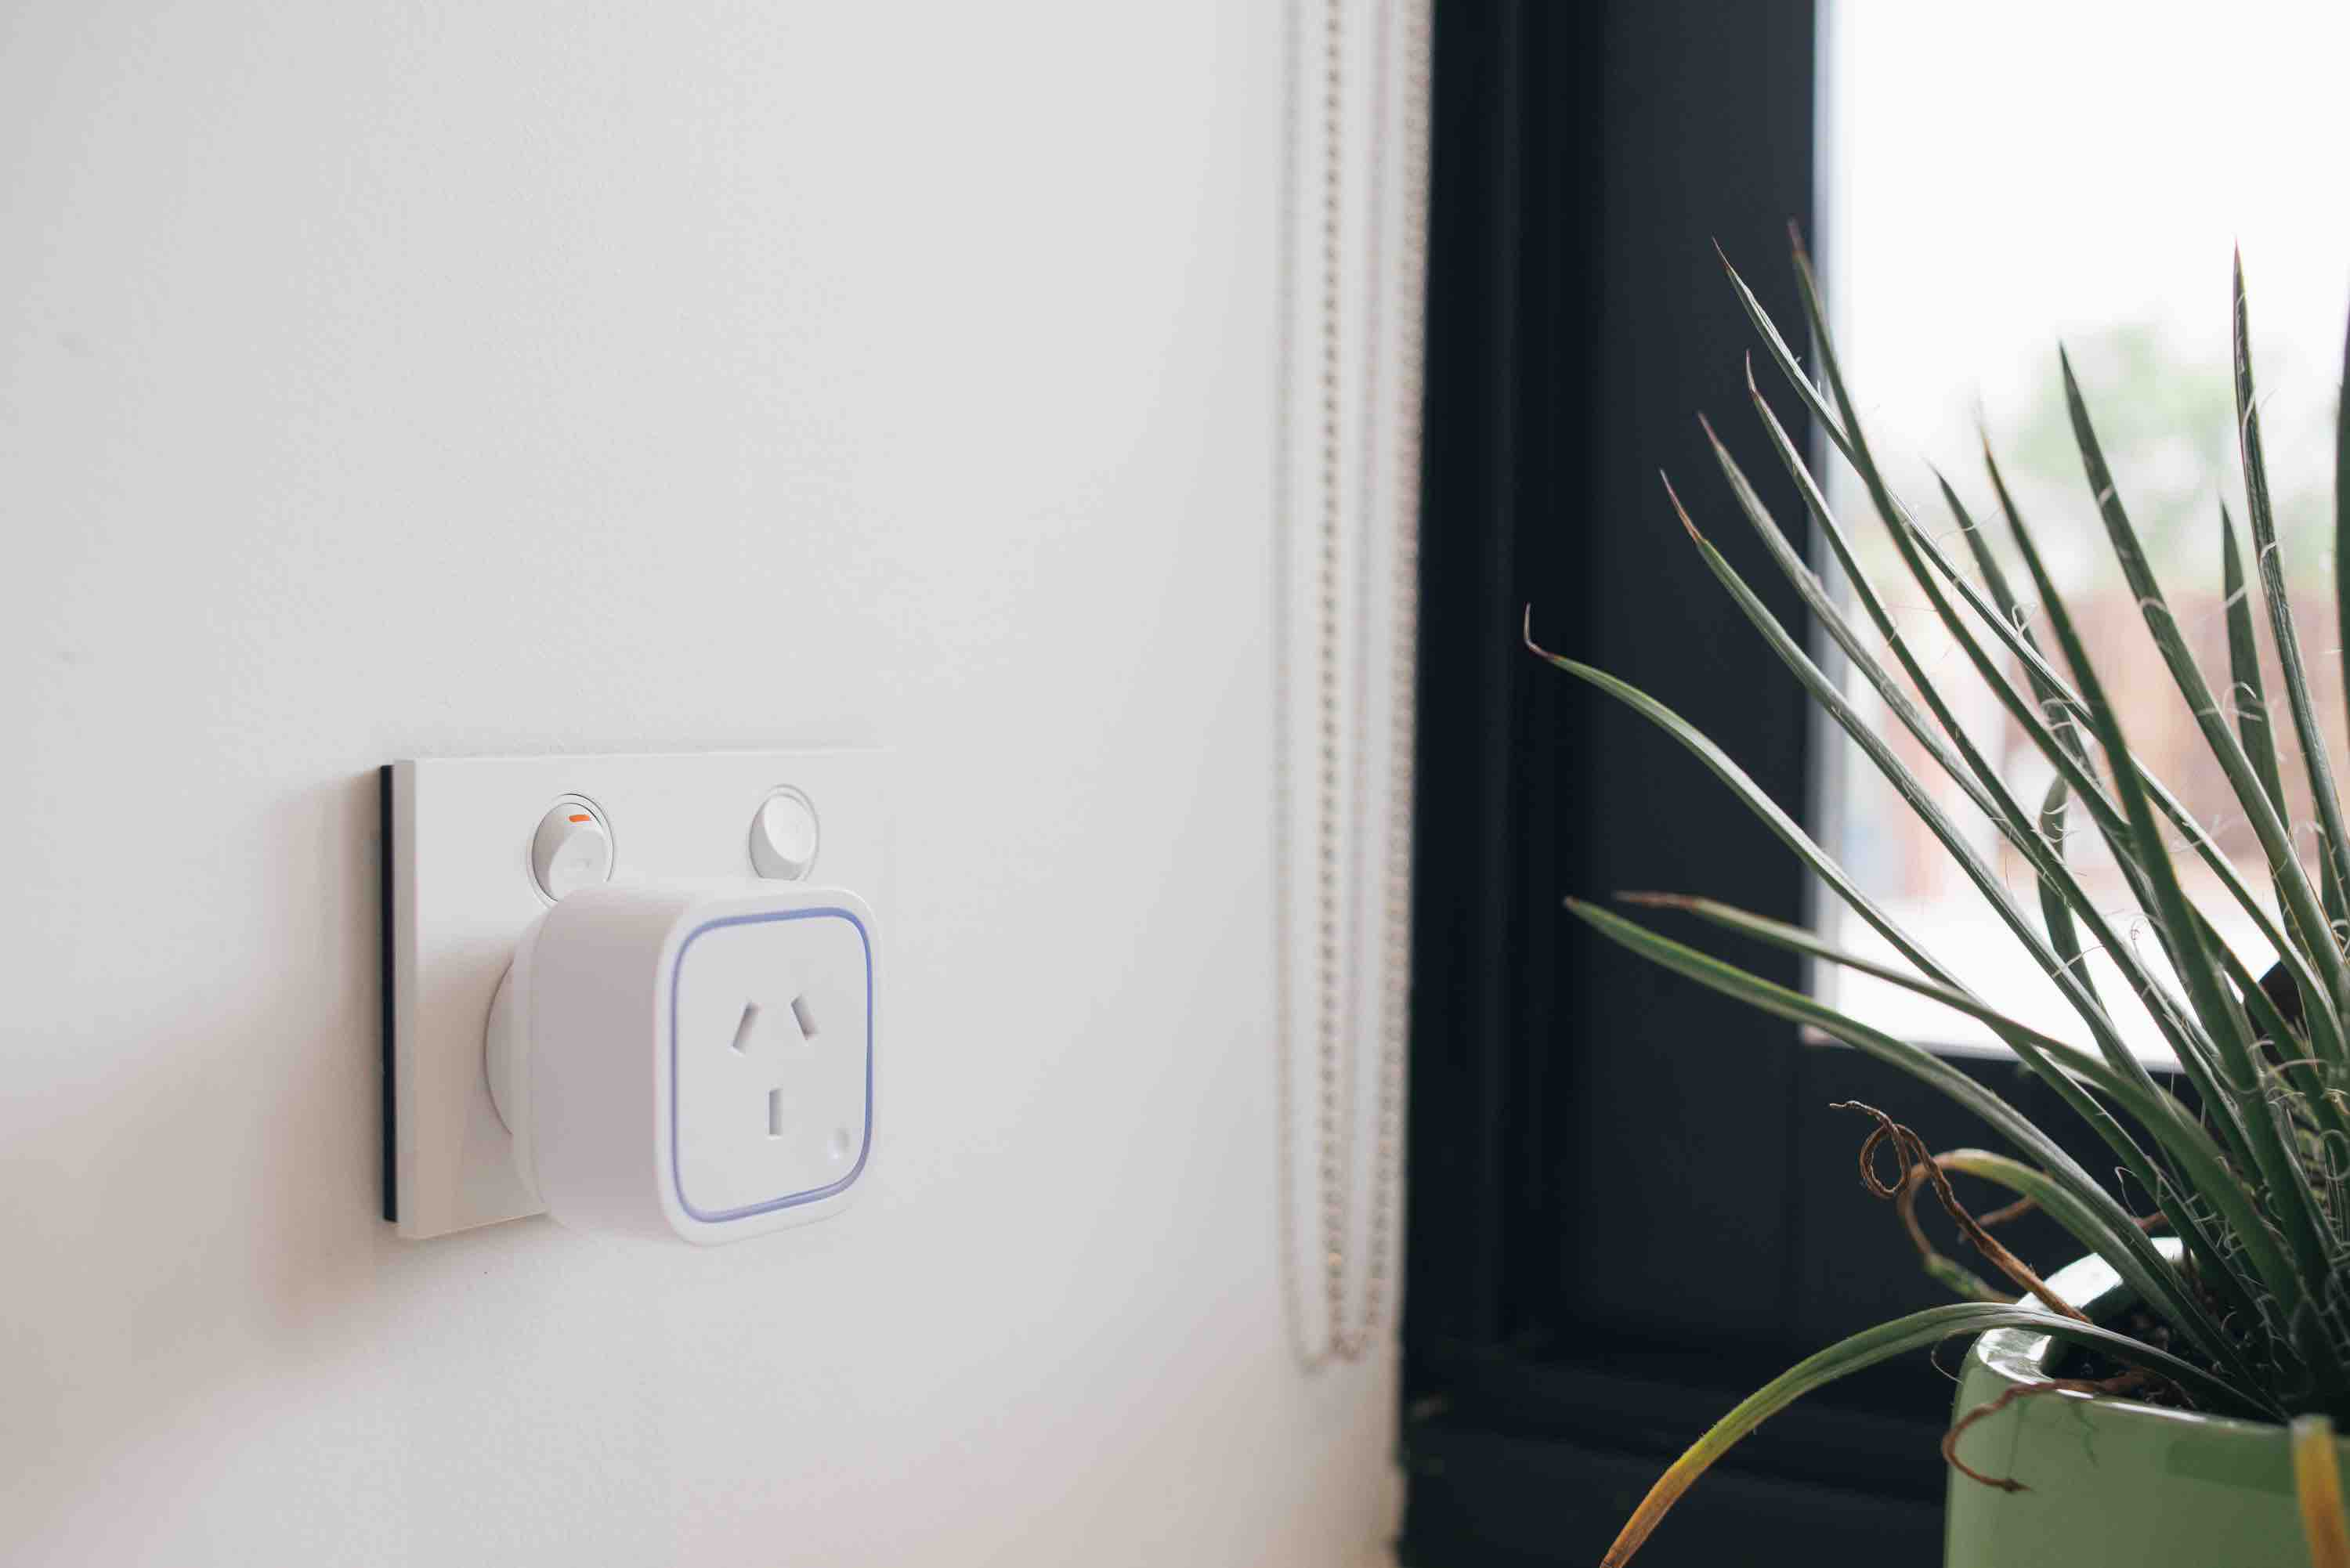 Top 4 questions about smart plugs